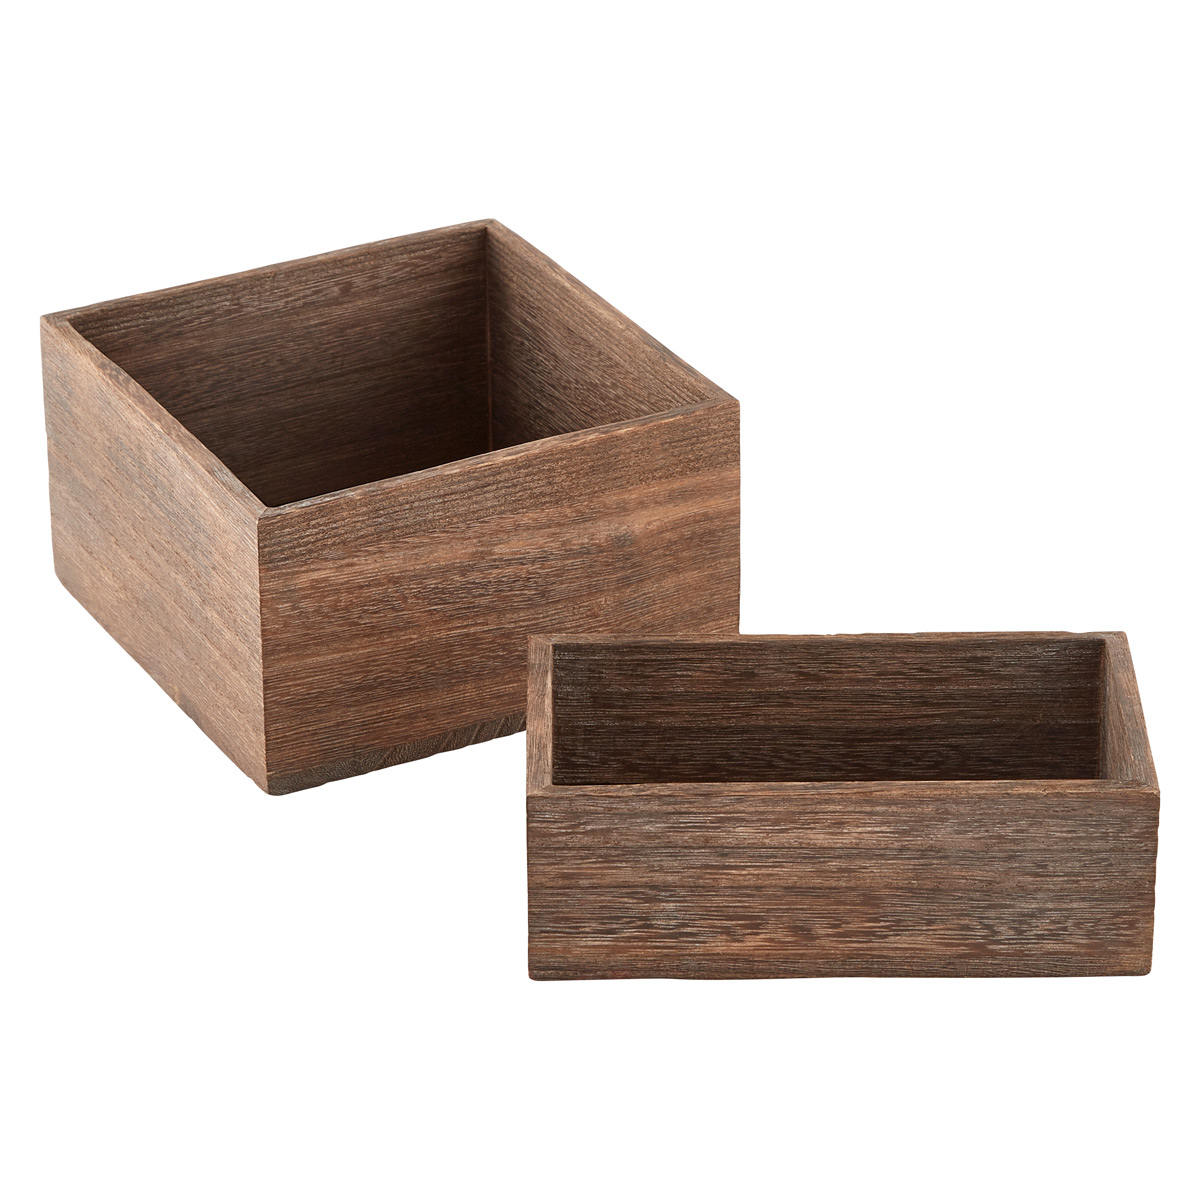 Feathergrain Wooden Containers